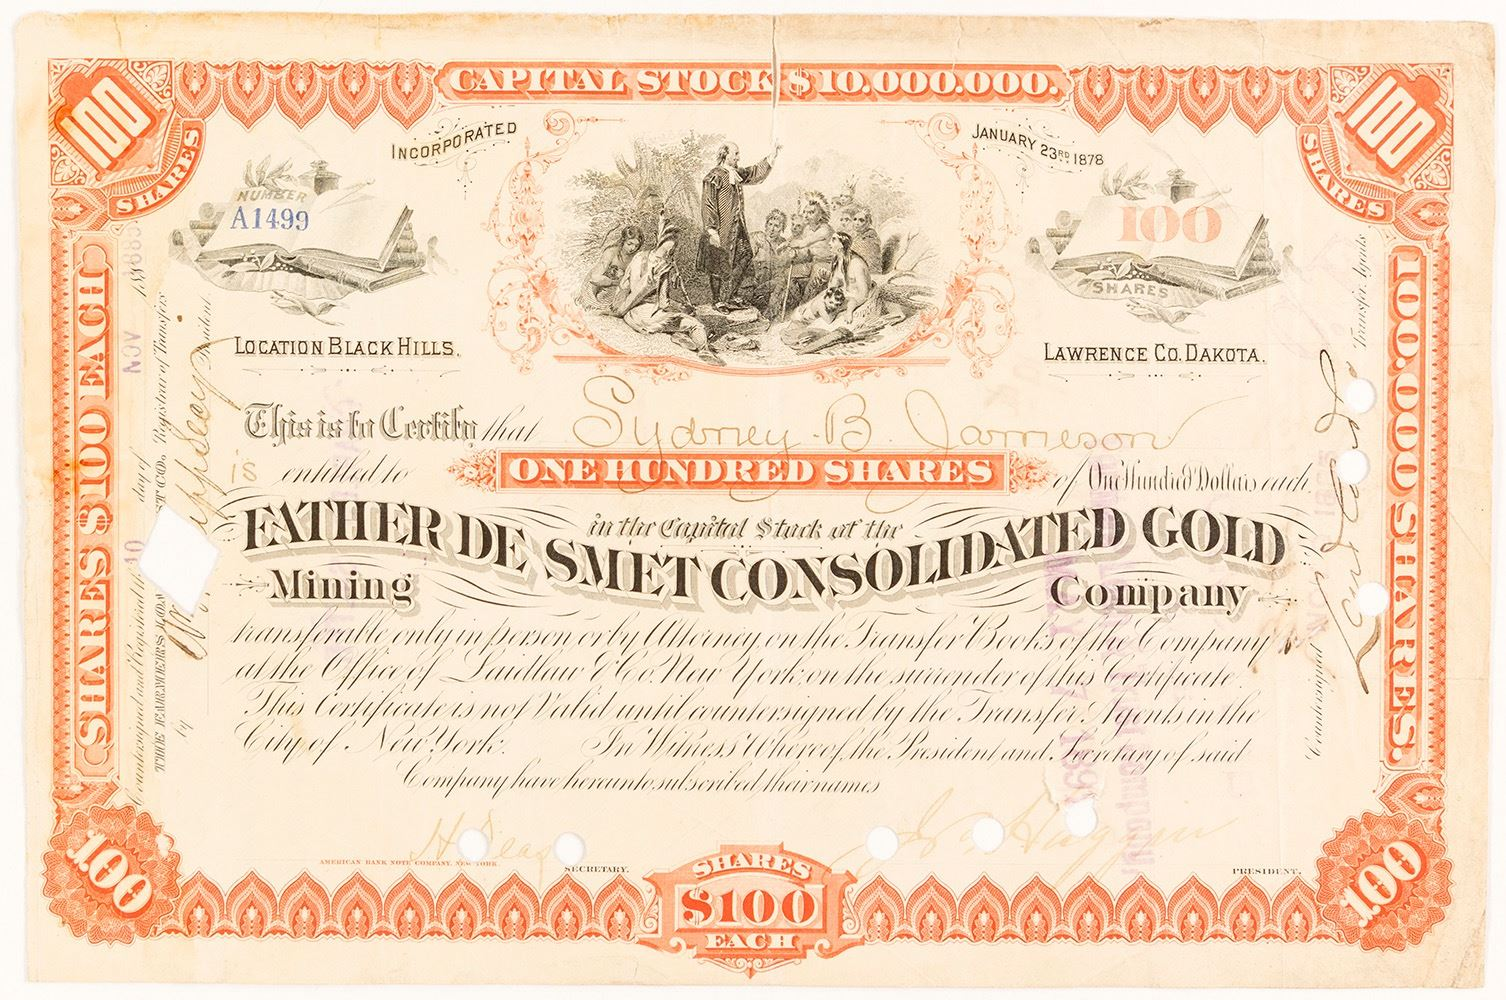 Father De Smet Consolidated Gold Mining Co  Stock Certificate, Dakota  Territory, 1885